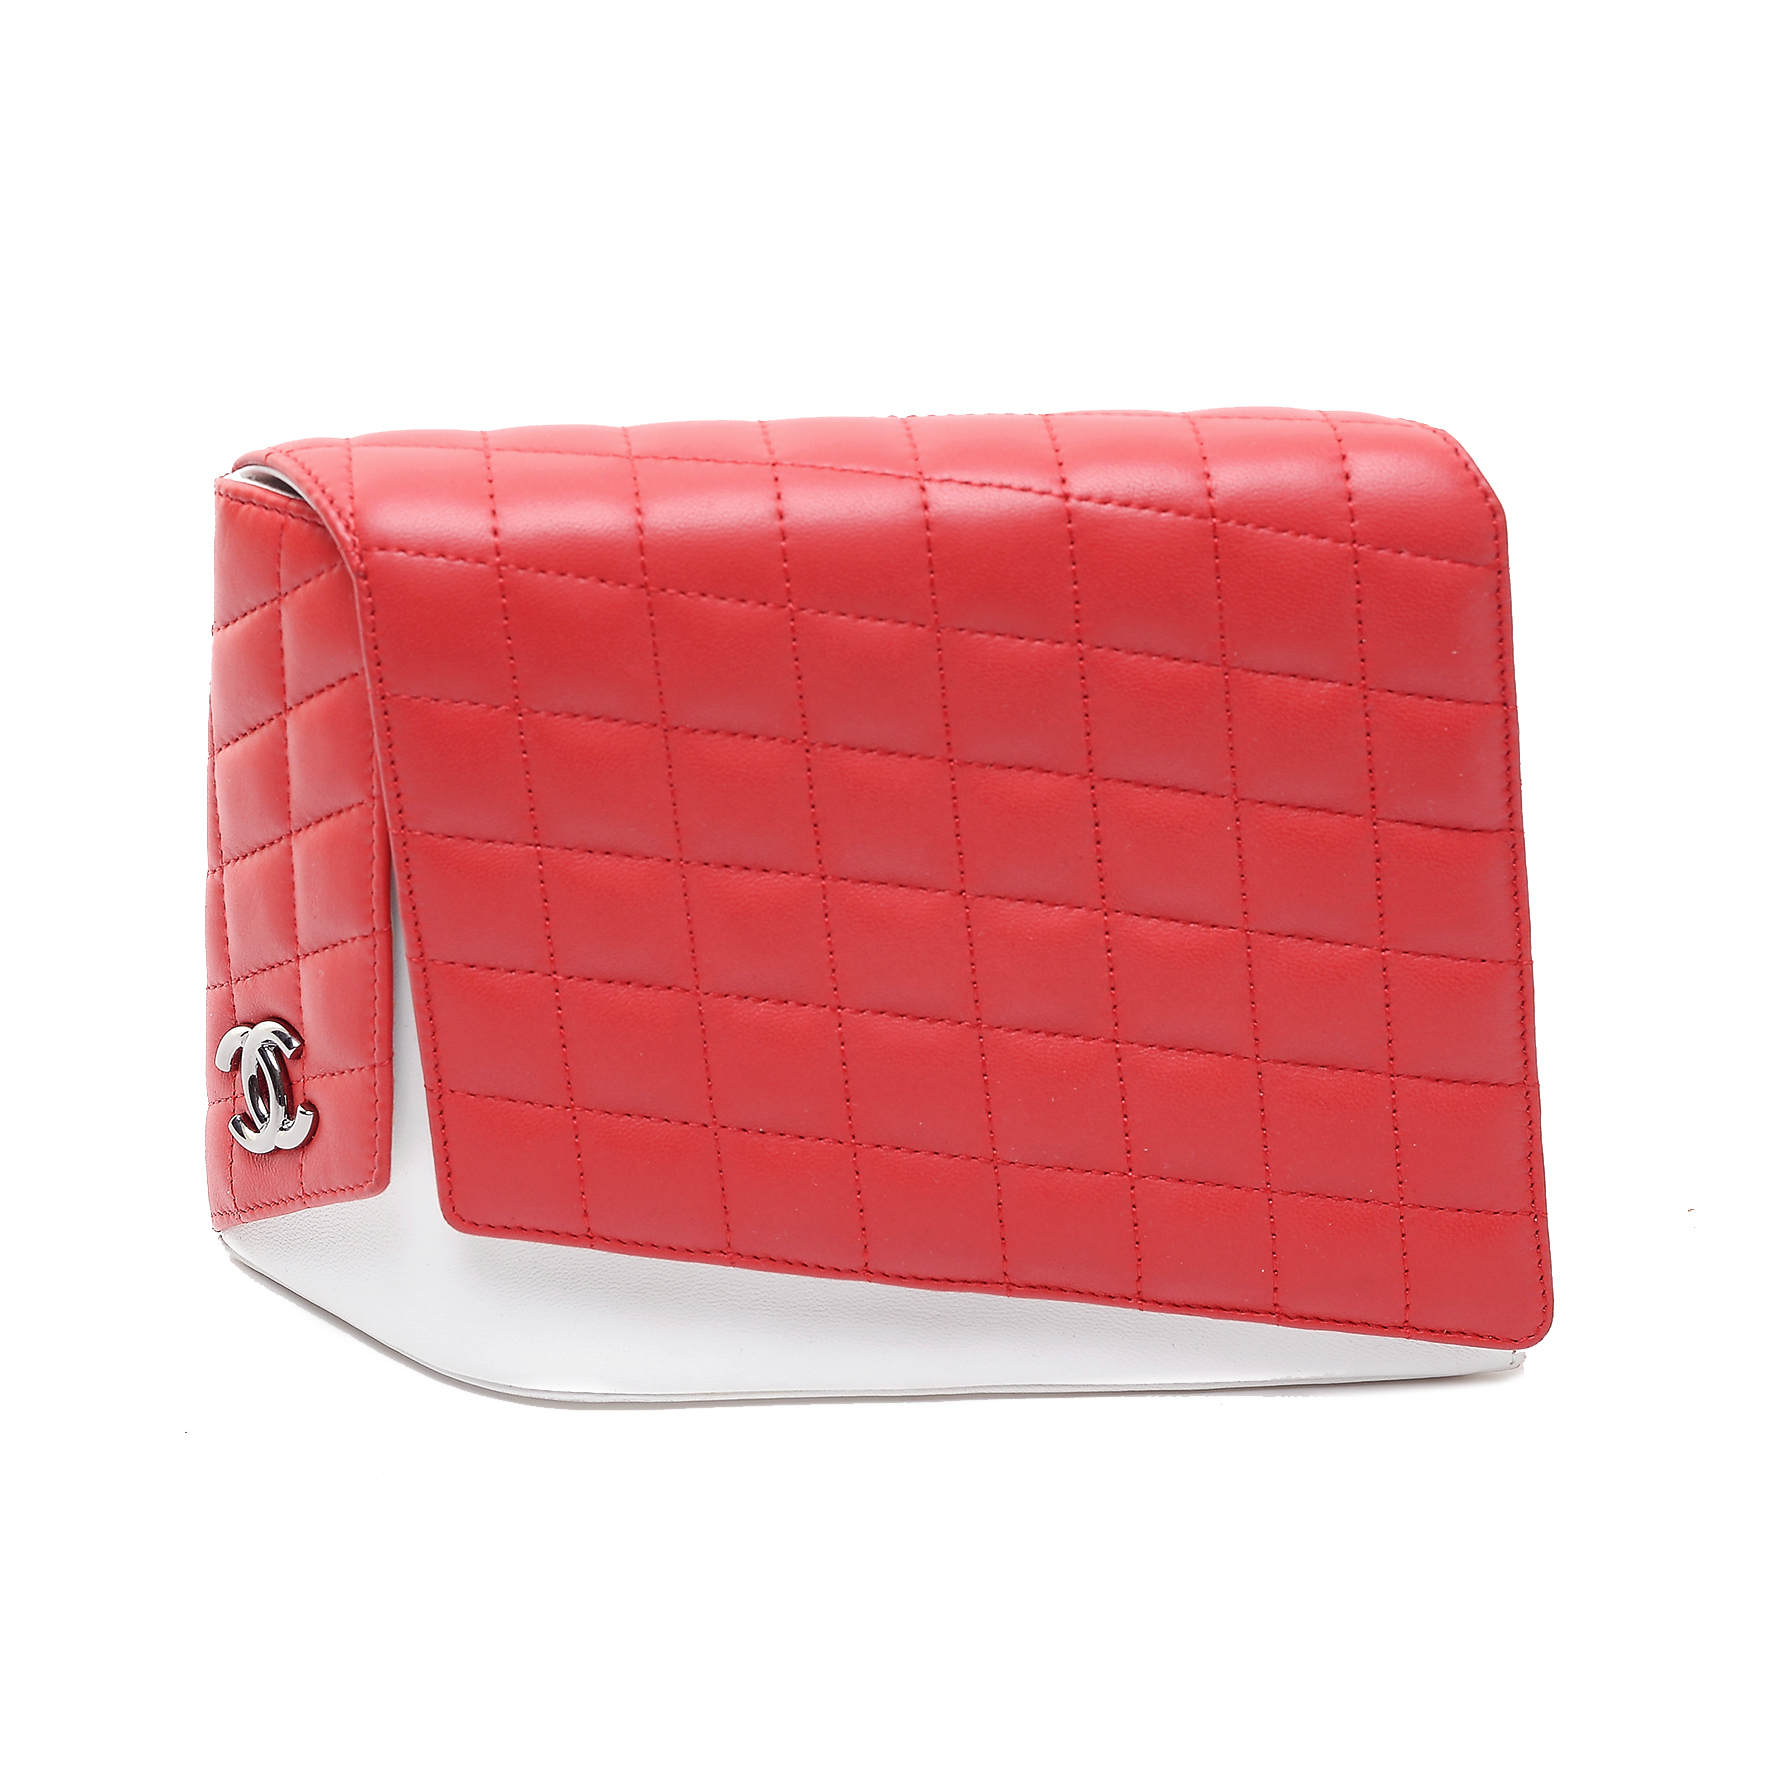 eadb3a8e69441a ... Chanel Red/White Quilted Lambskin Leather Fresh Air Clutch Bag